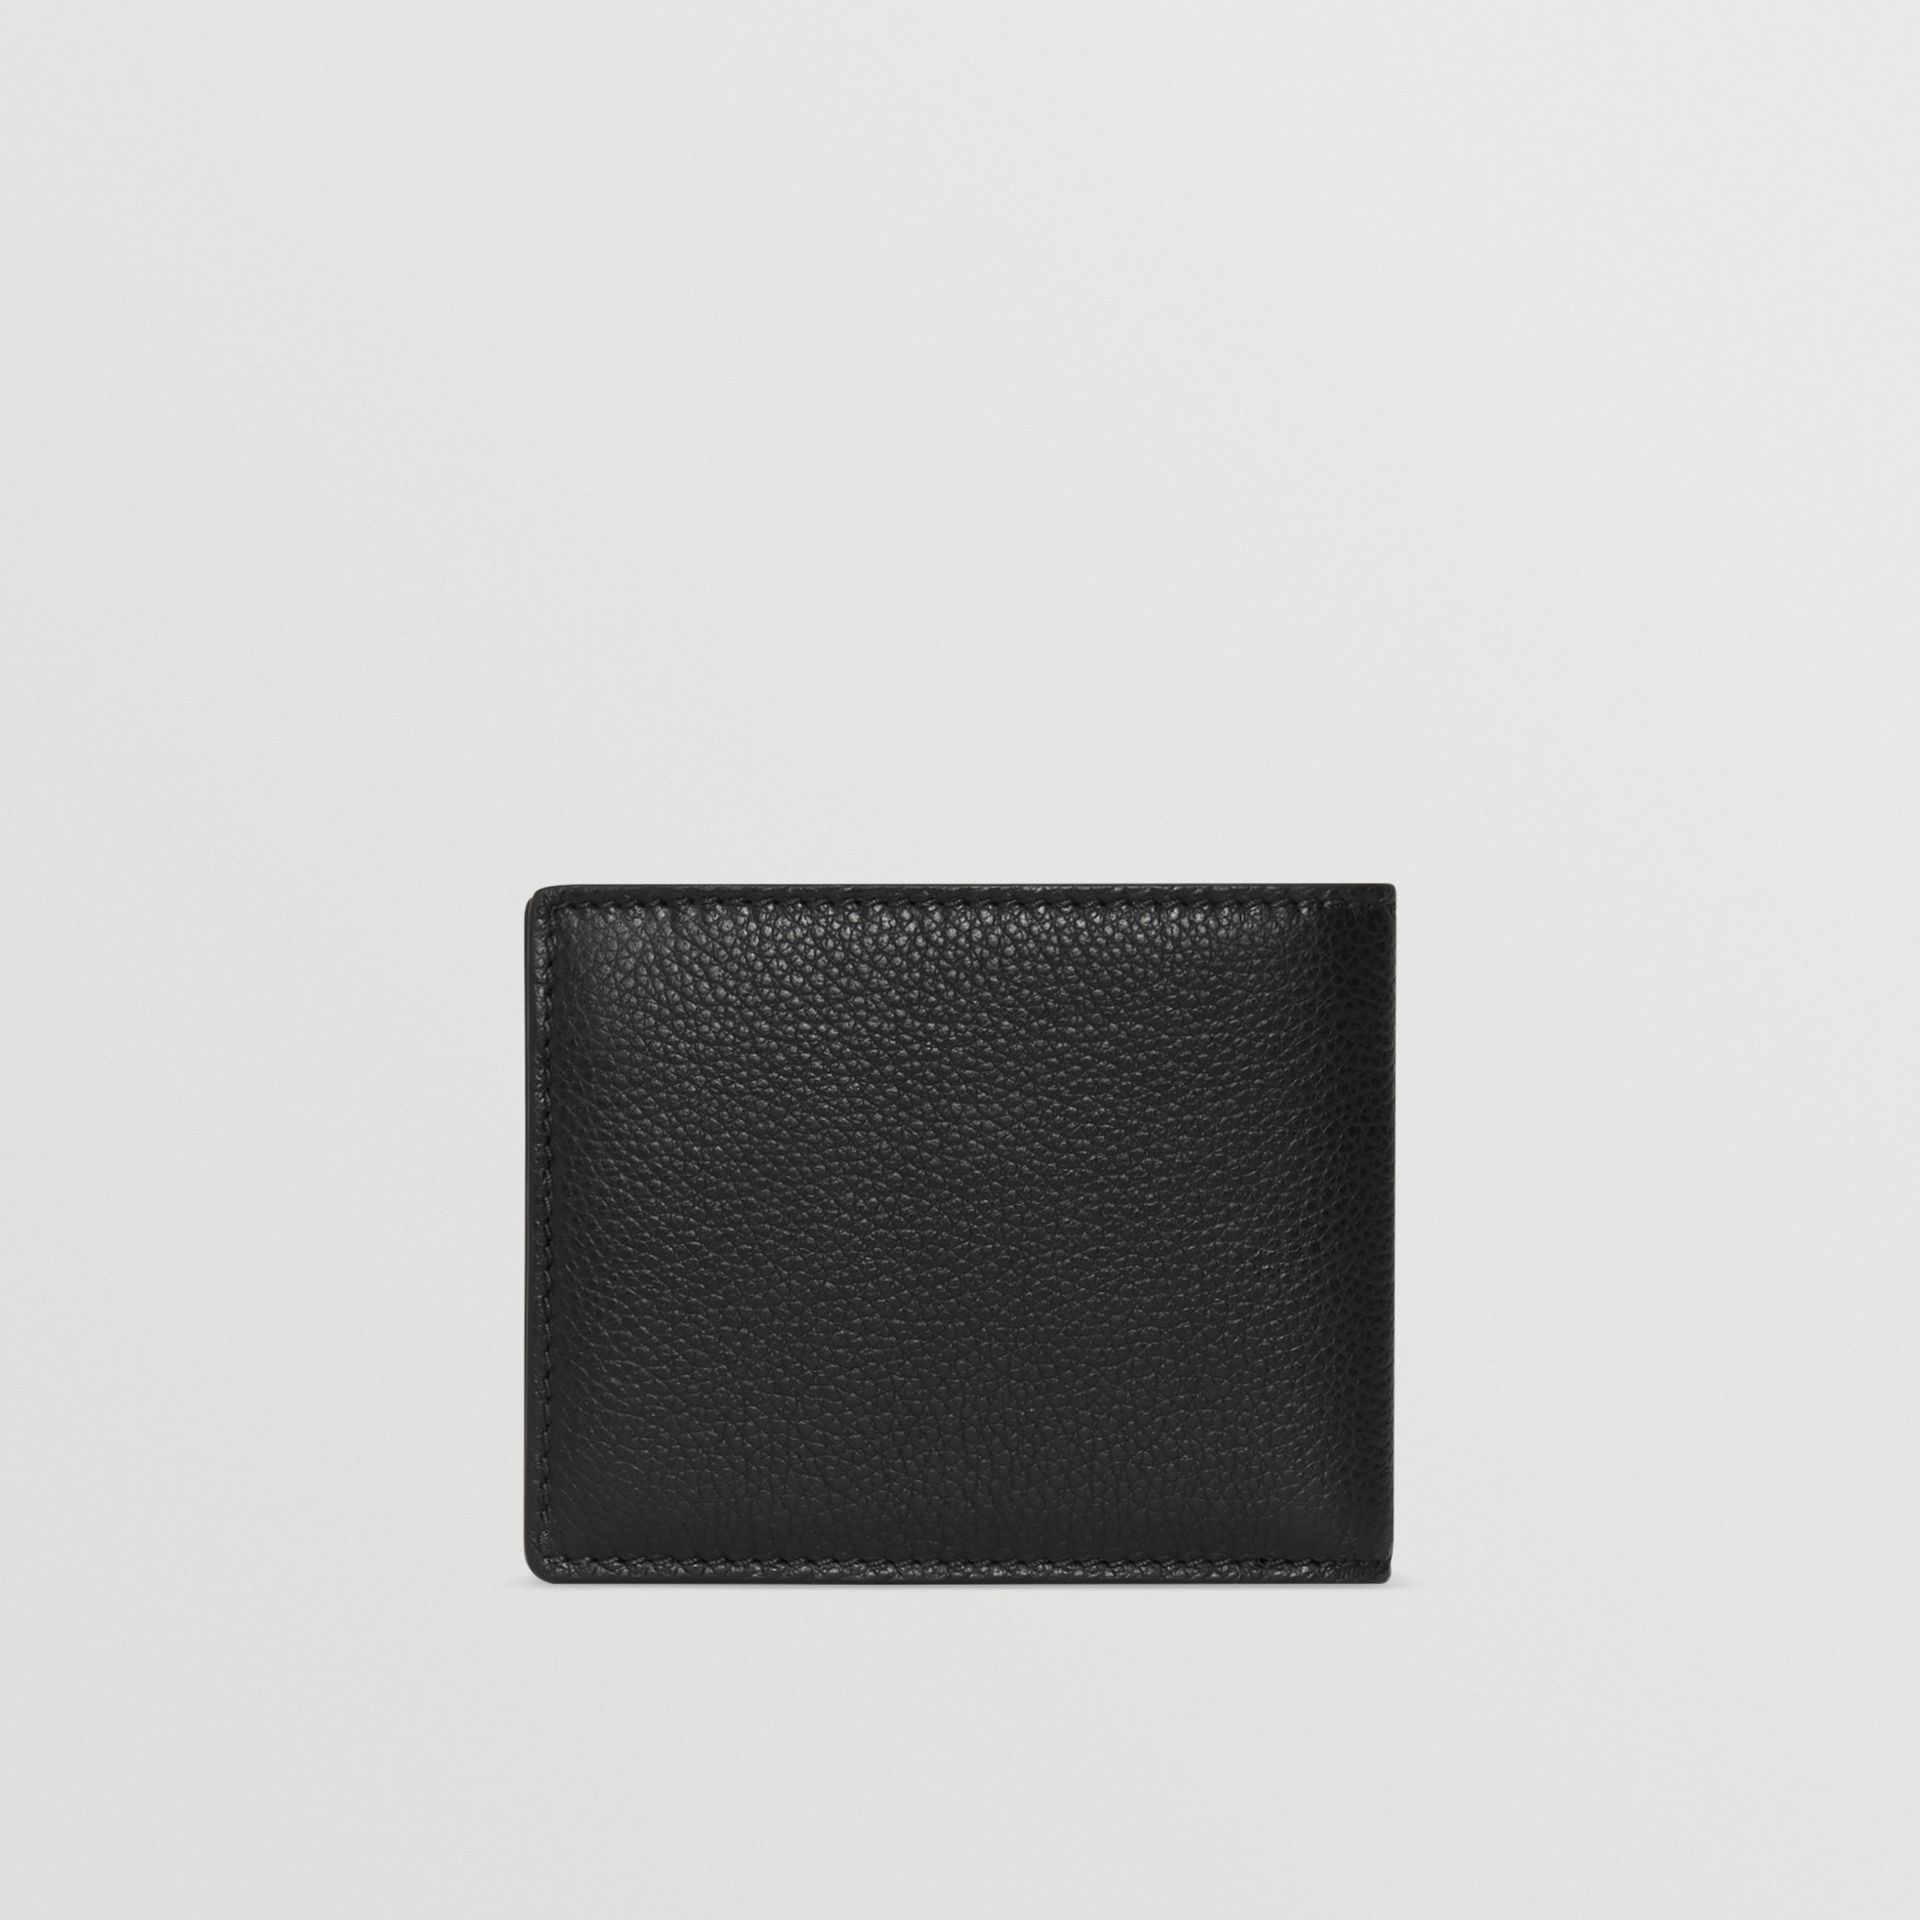 Grainy Leather Bifold Wallet in Black - Men | Burberry Australia - gallery image 4